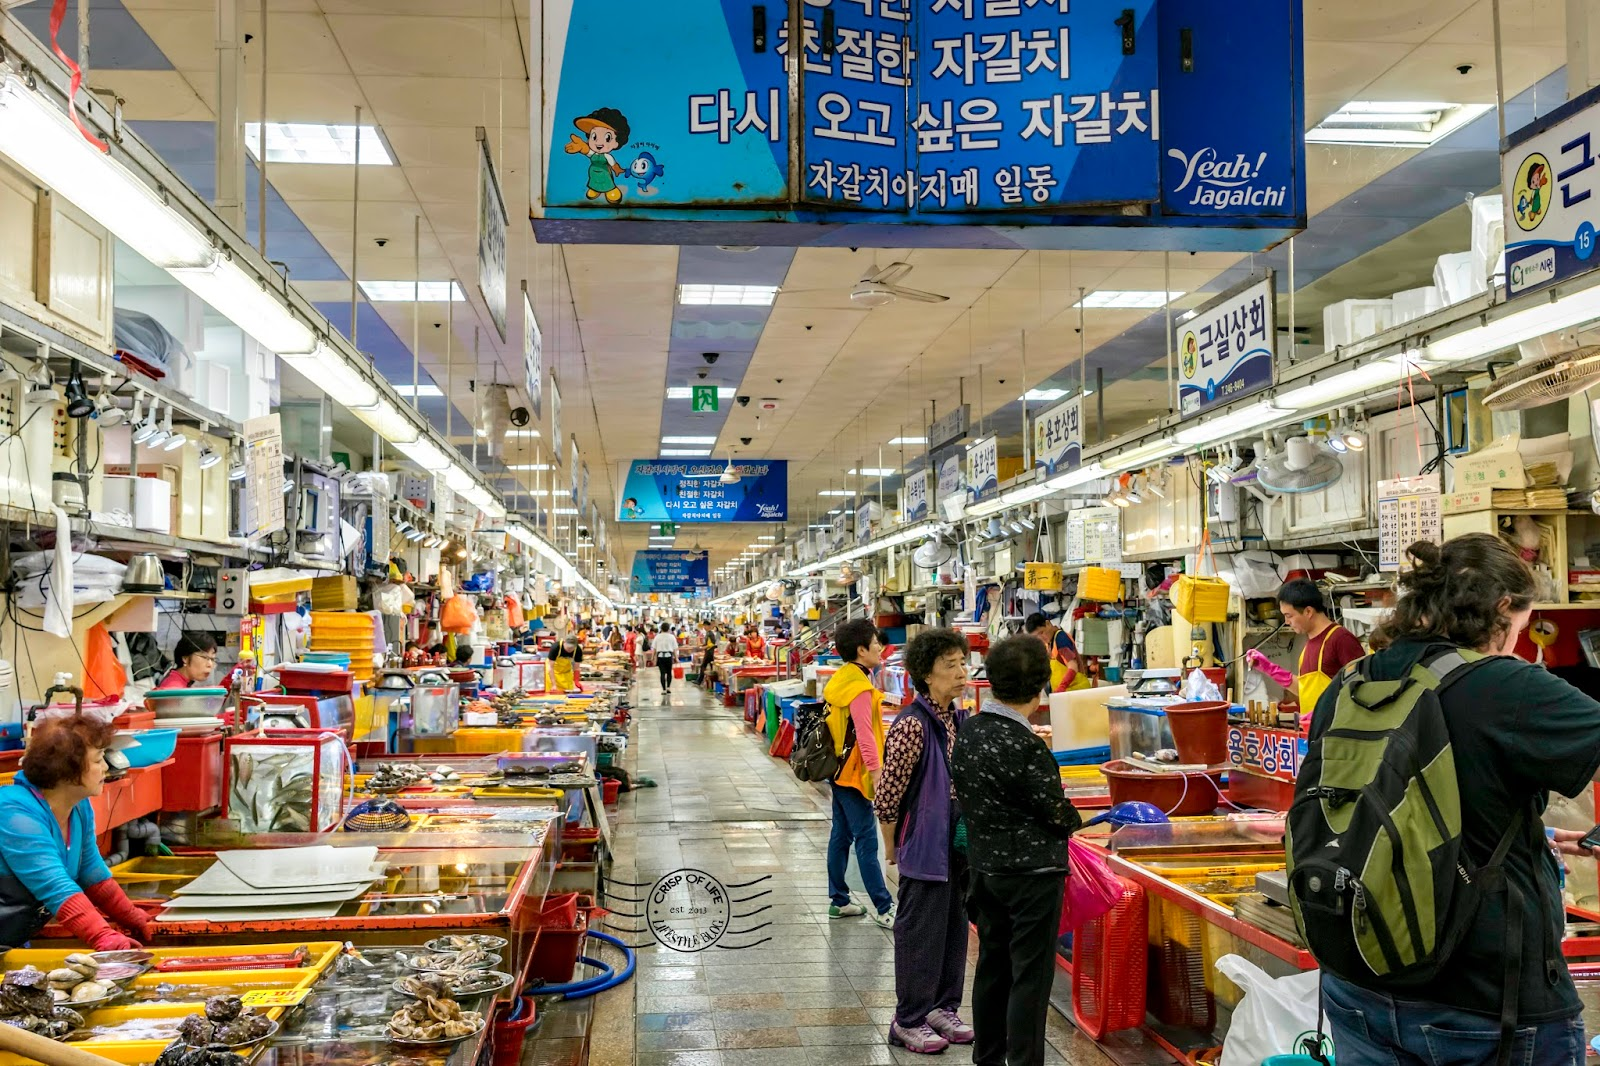 Busan 3 Days Itinerary - What Things to Do and See